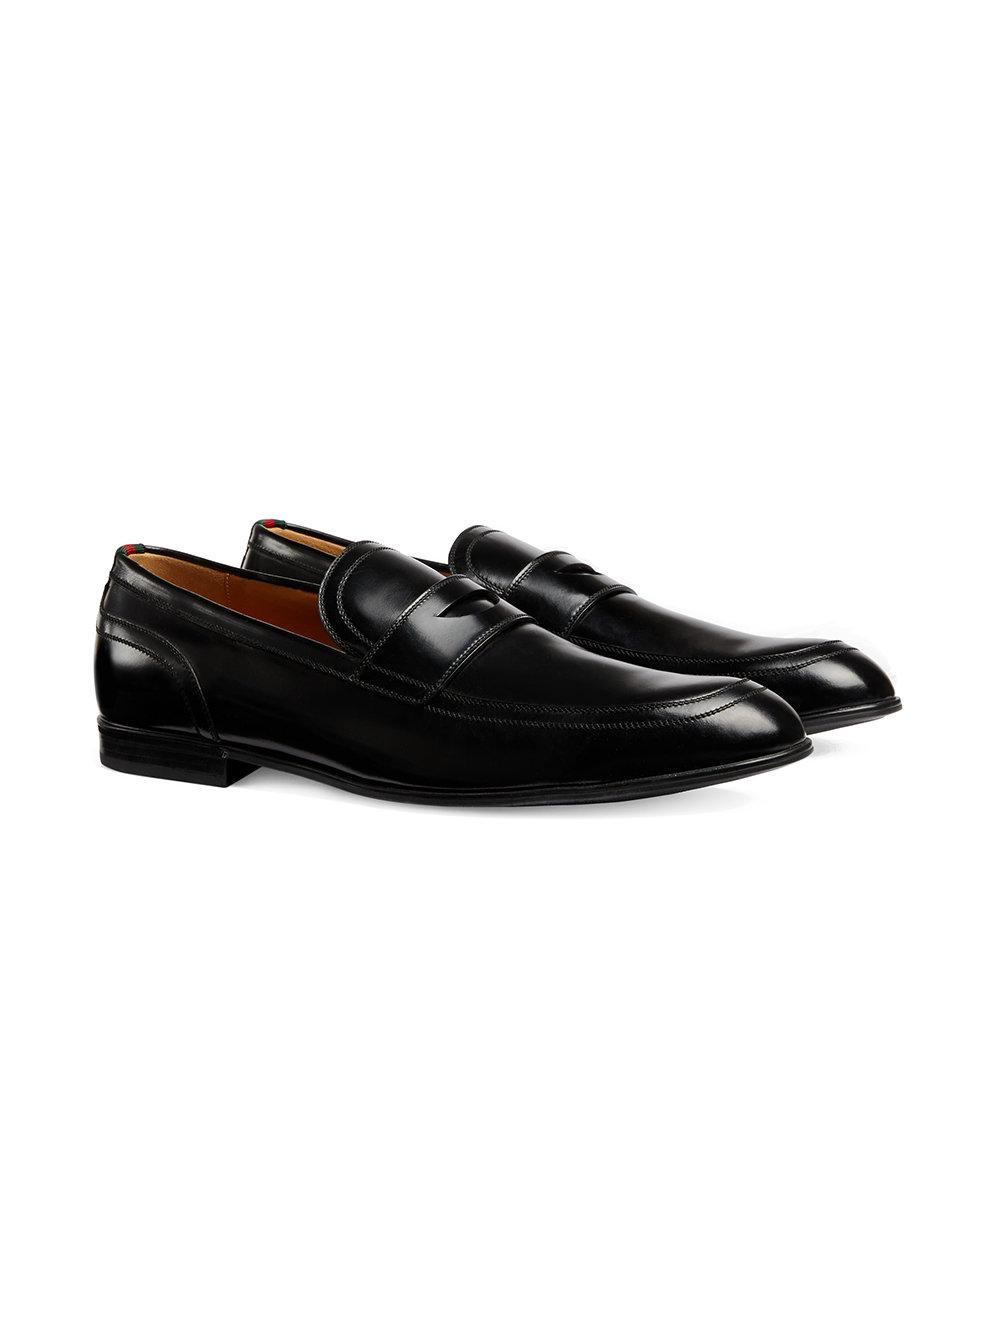 8176b7d5f11 Lyst - Gucci Leather Loafer With Web in Black for Men